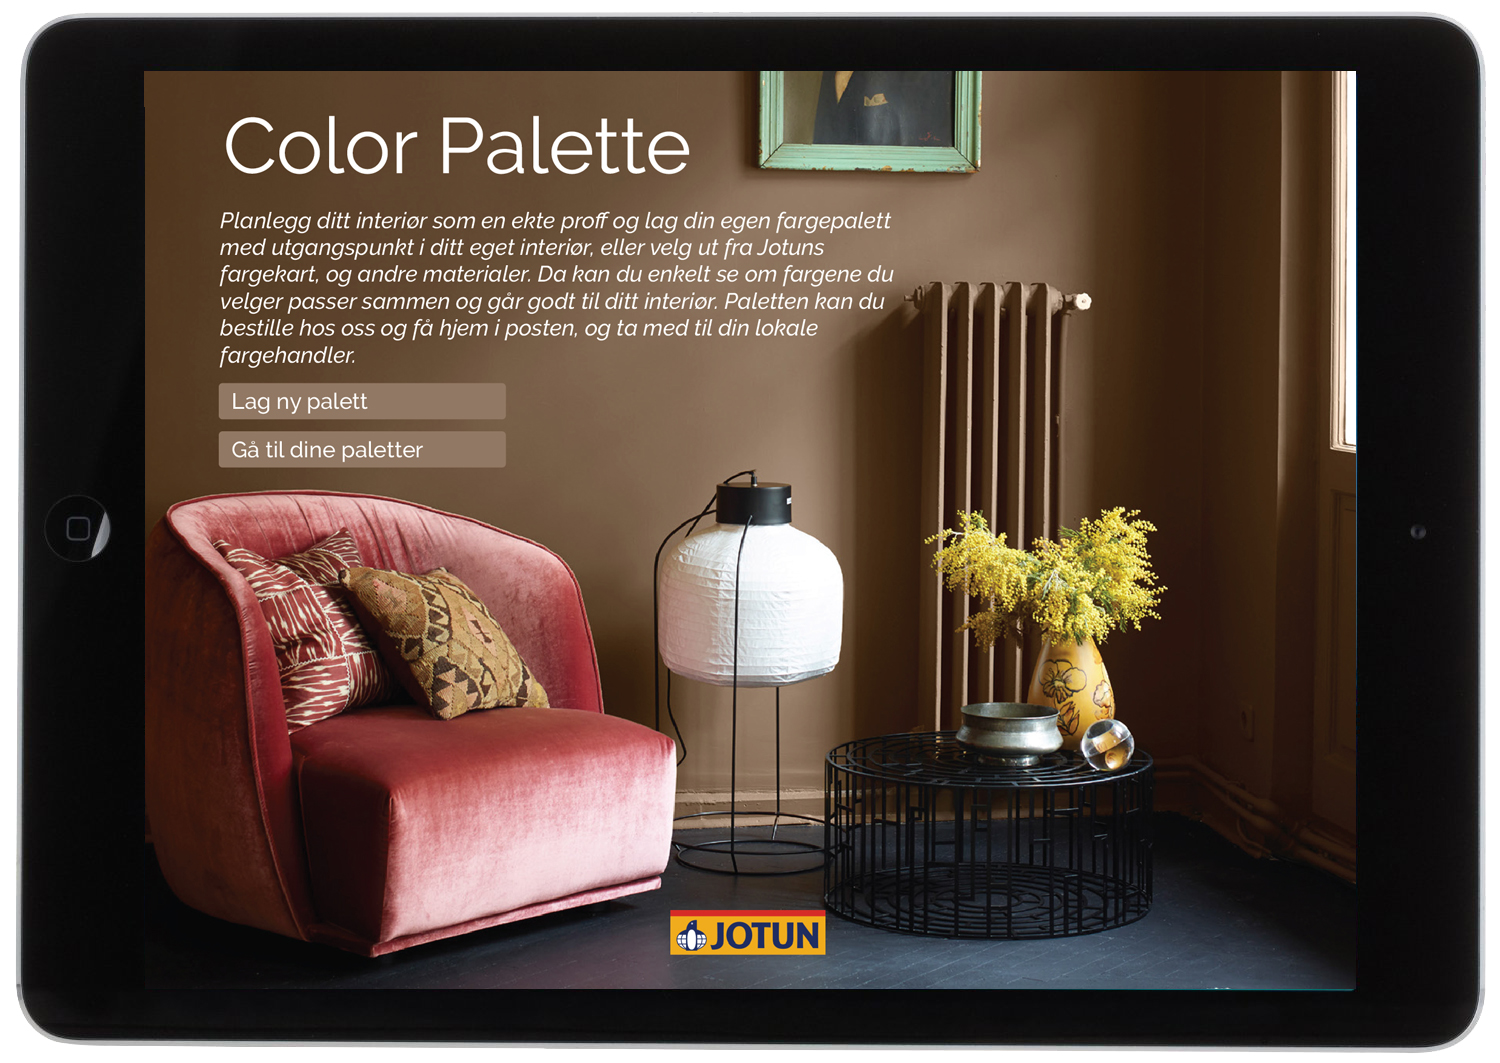 2. Information about the service. Choose whether to create a new palette or go to your saved palettes